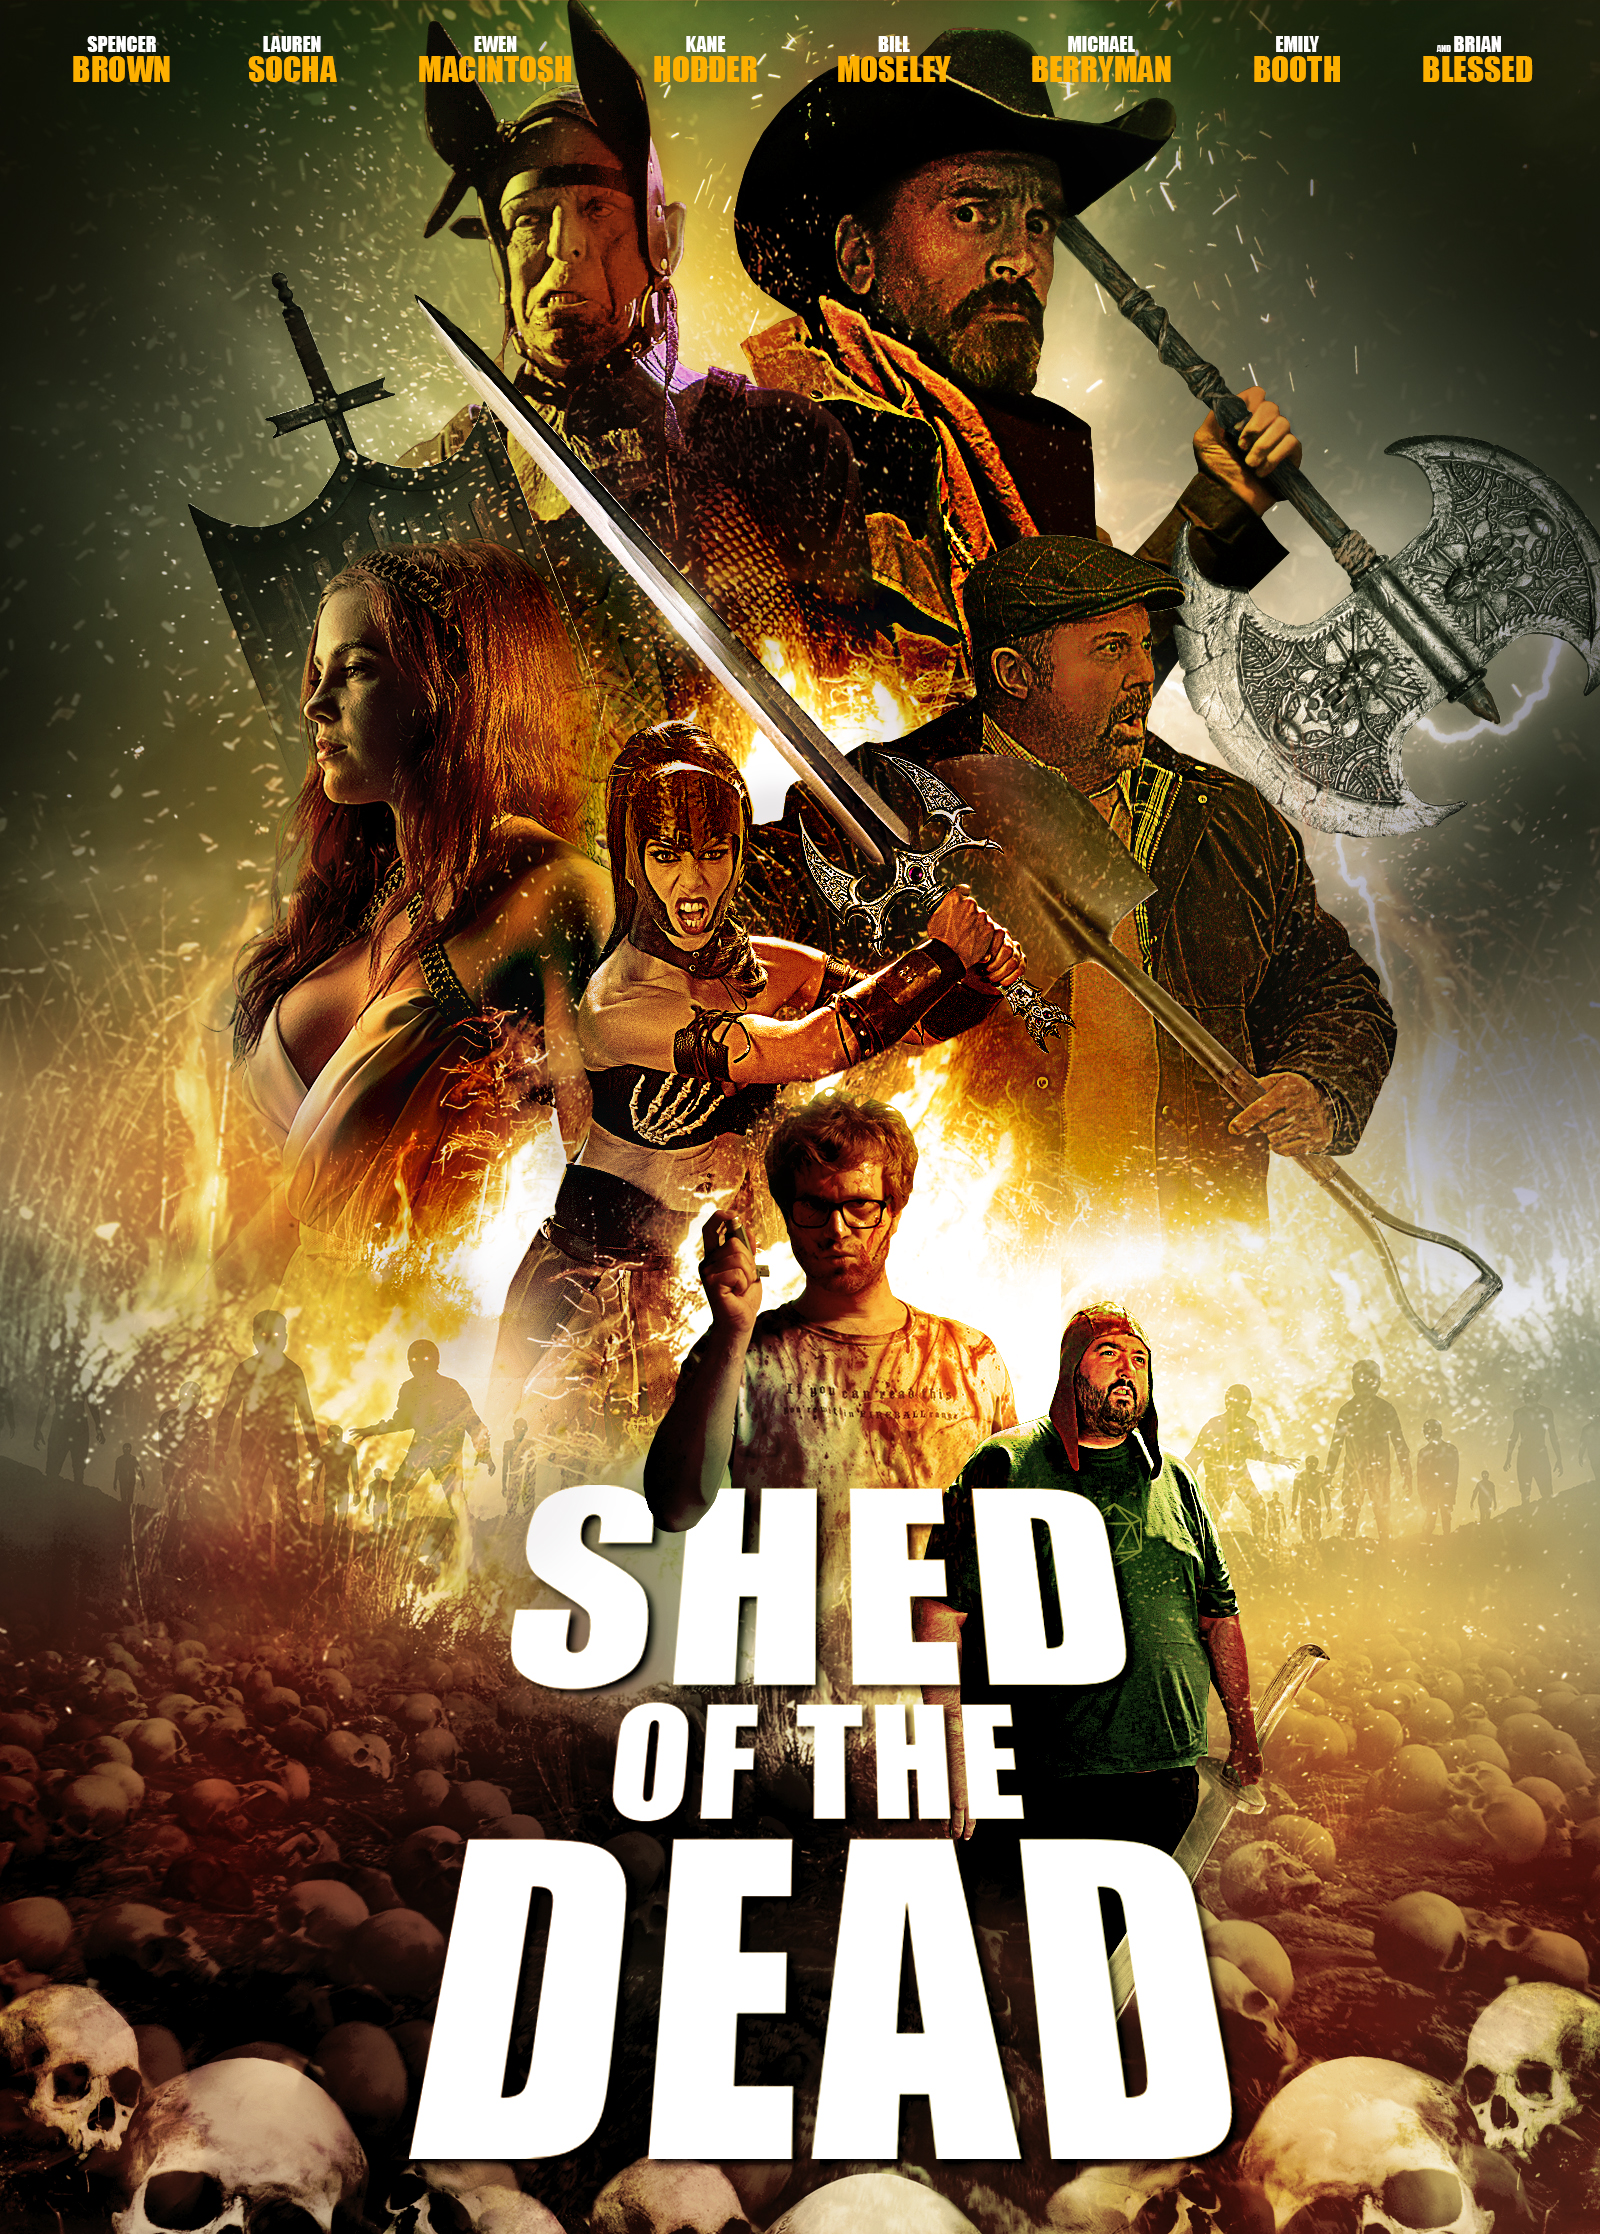 Shed of the Dead kapak